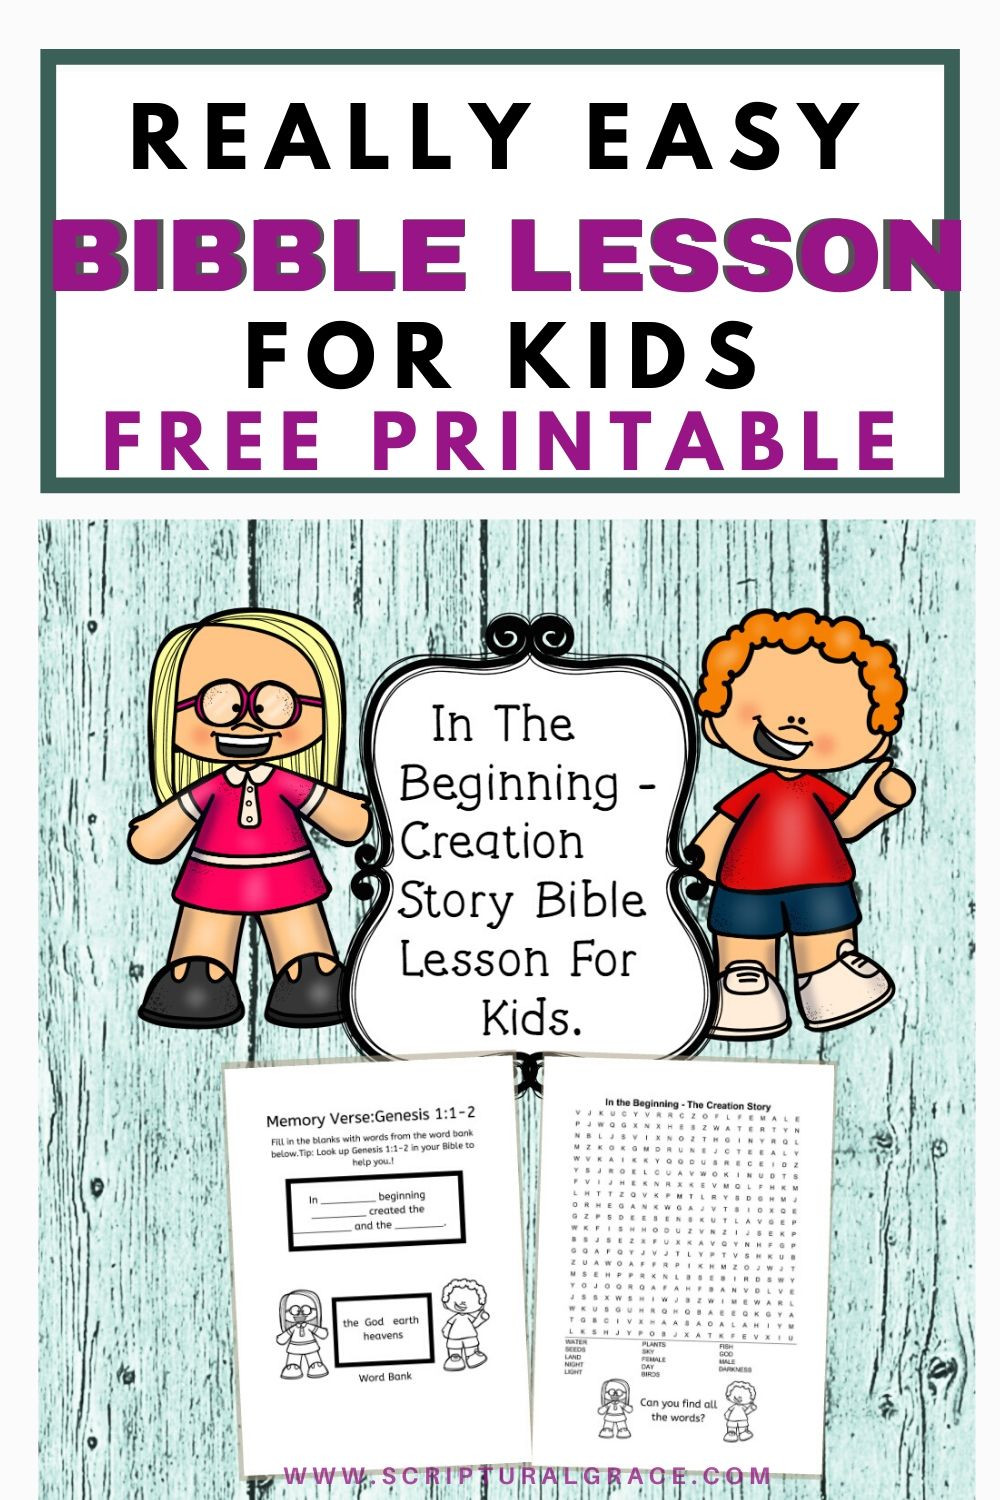 Free fun bible lesson for kids the story of creation and free printable